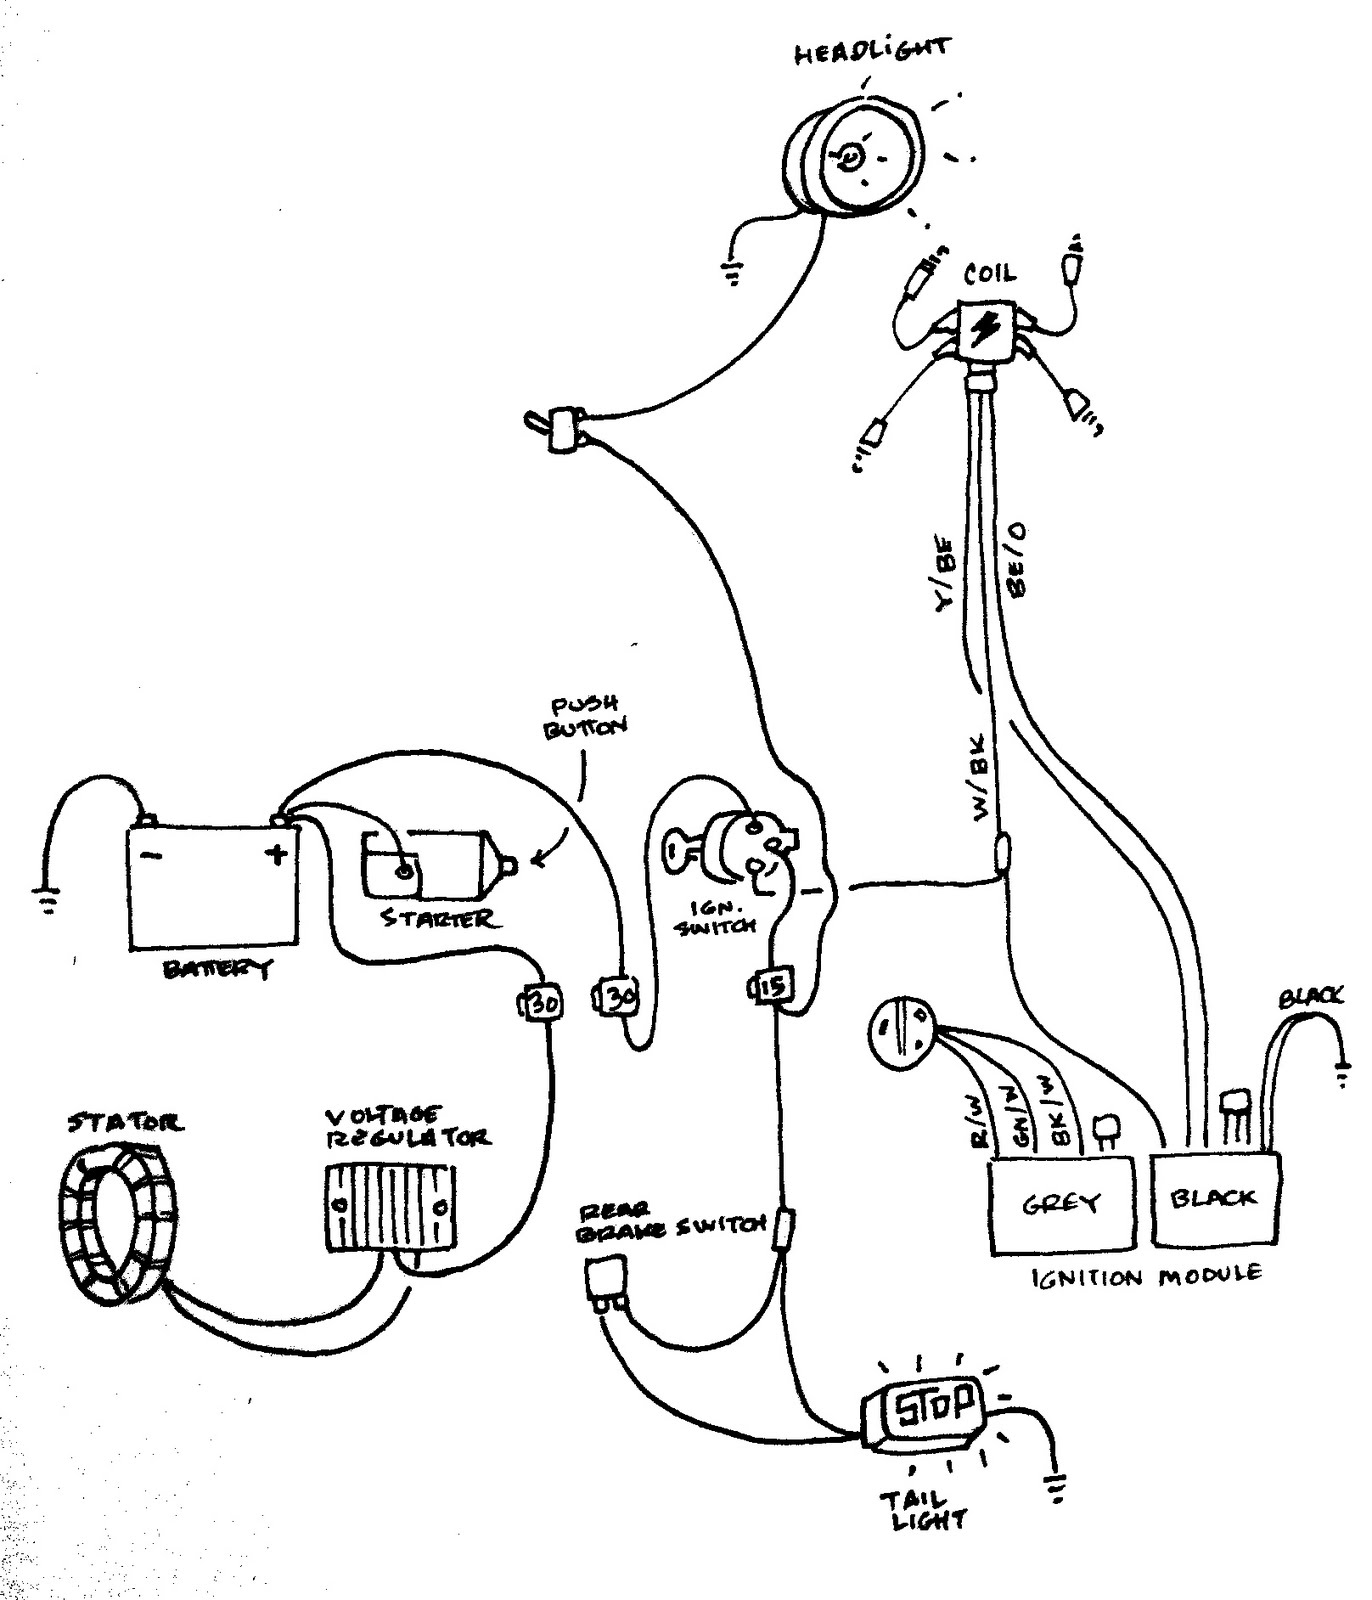 New Biltwell Blog: Sporty Wiring How-To